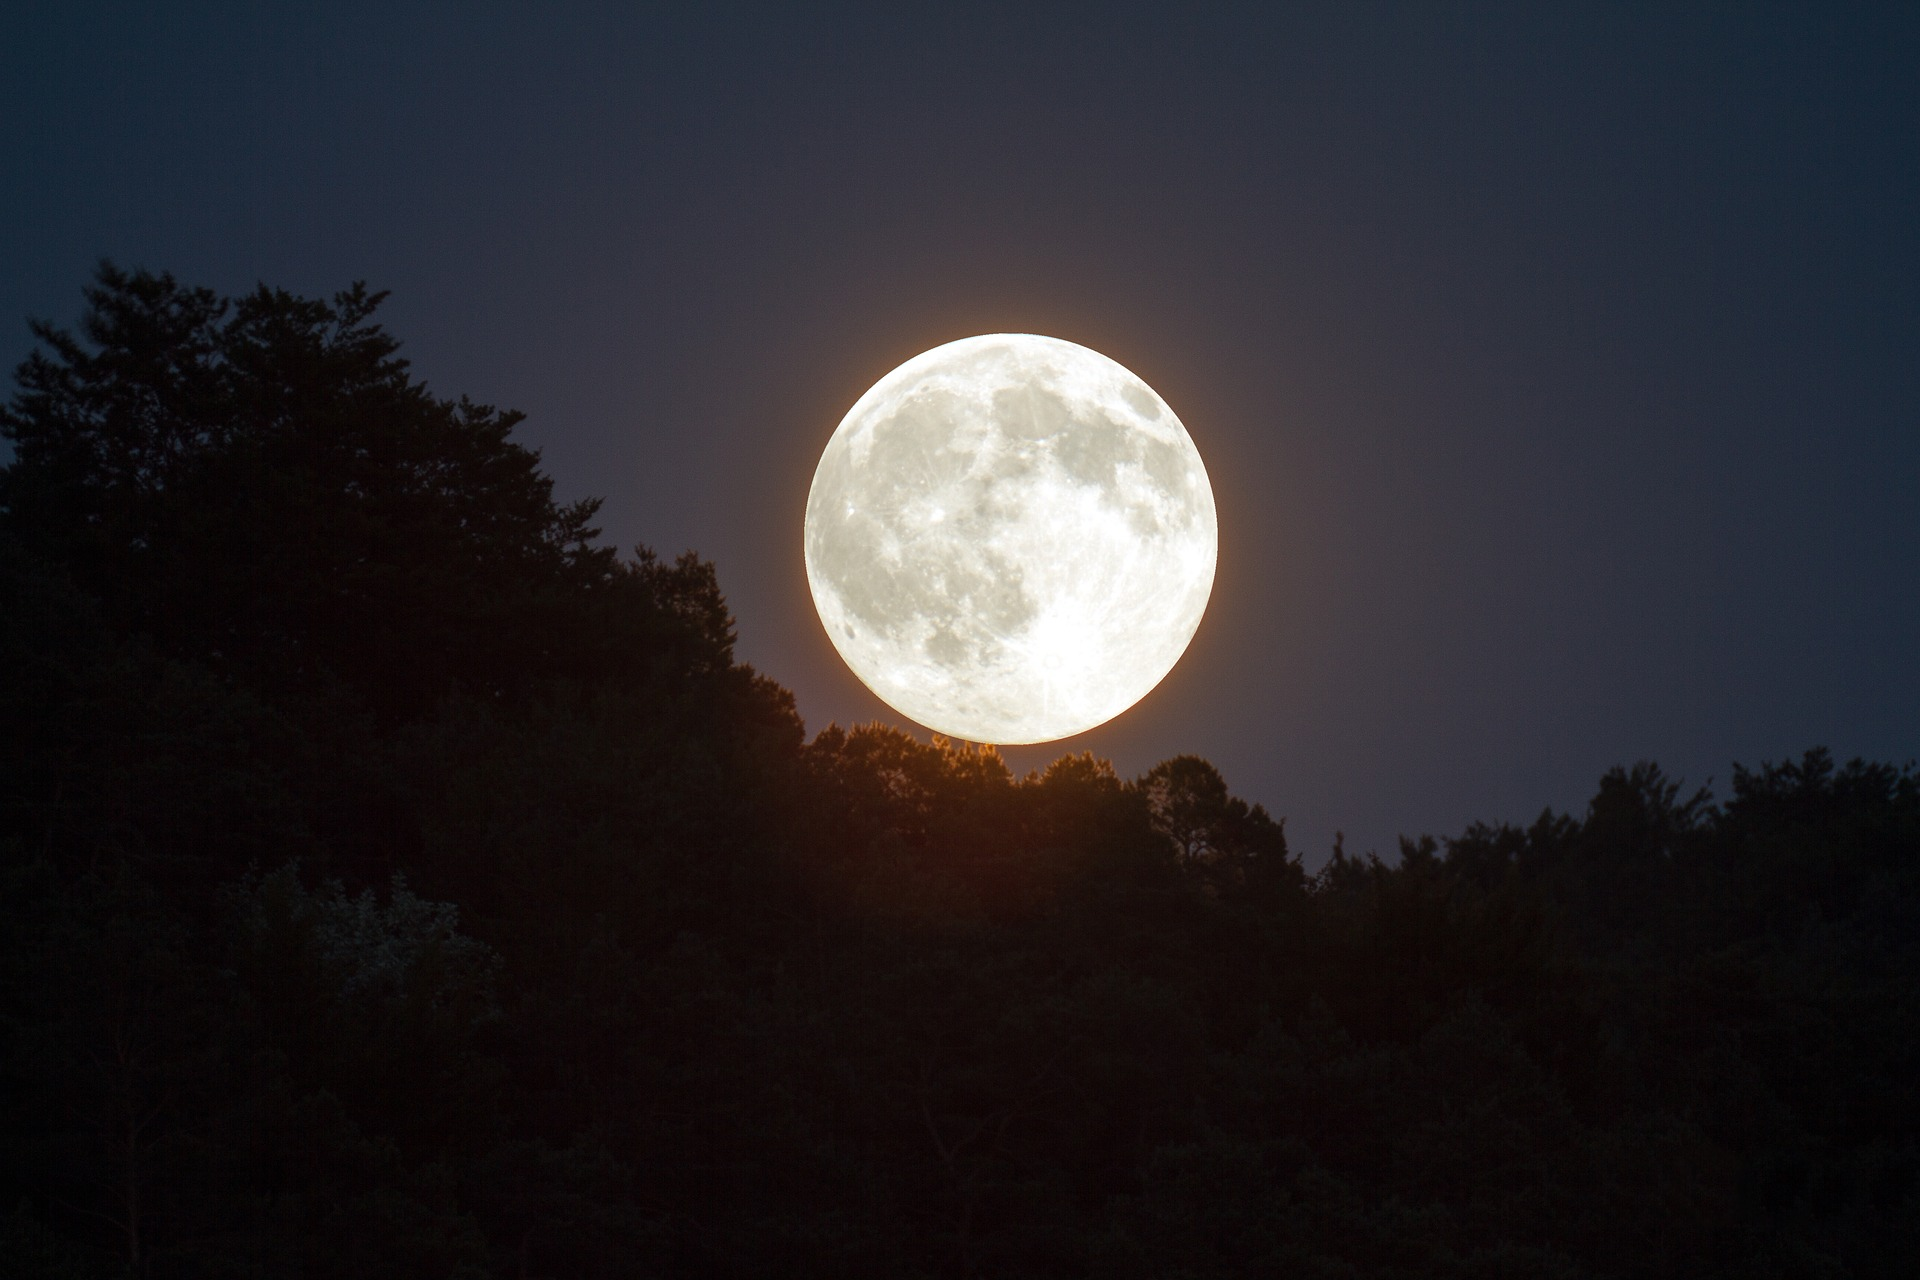 A super snow moon will appear this weekend - and here's how to see it